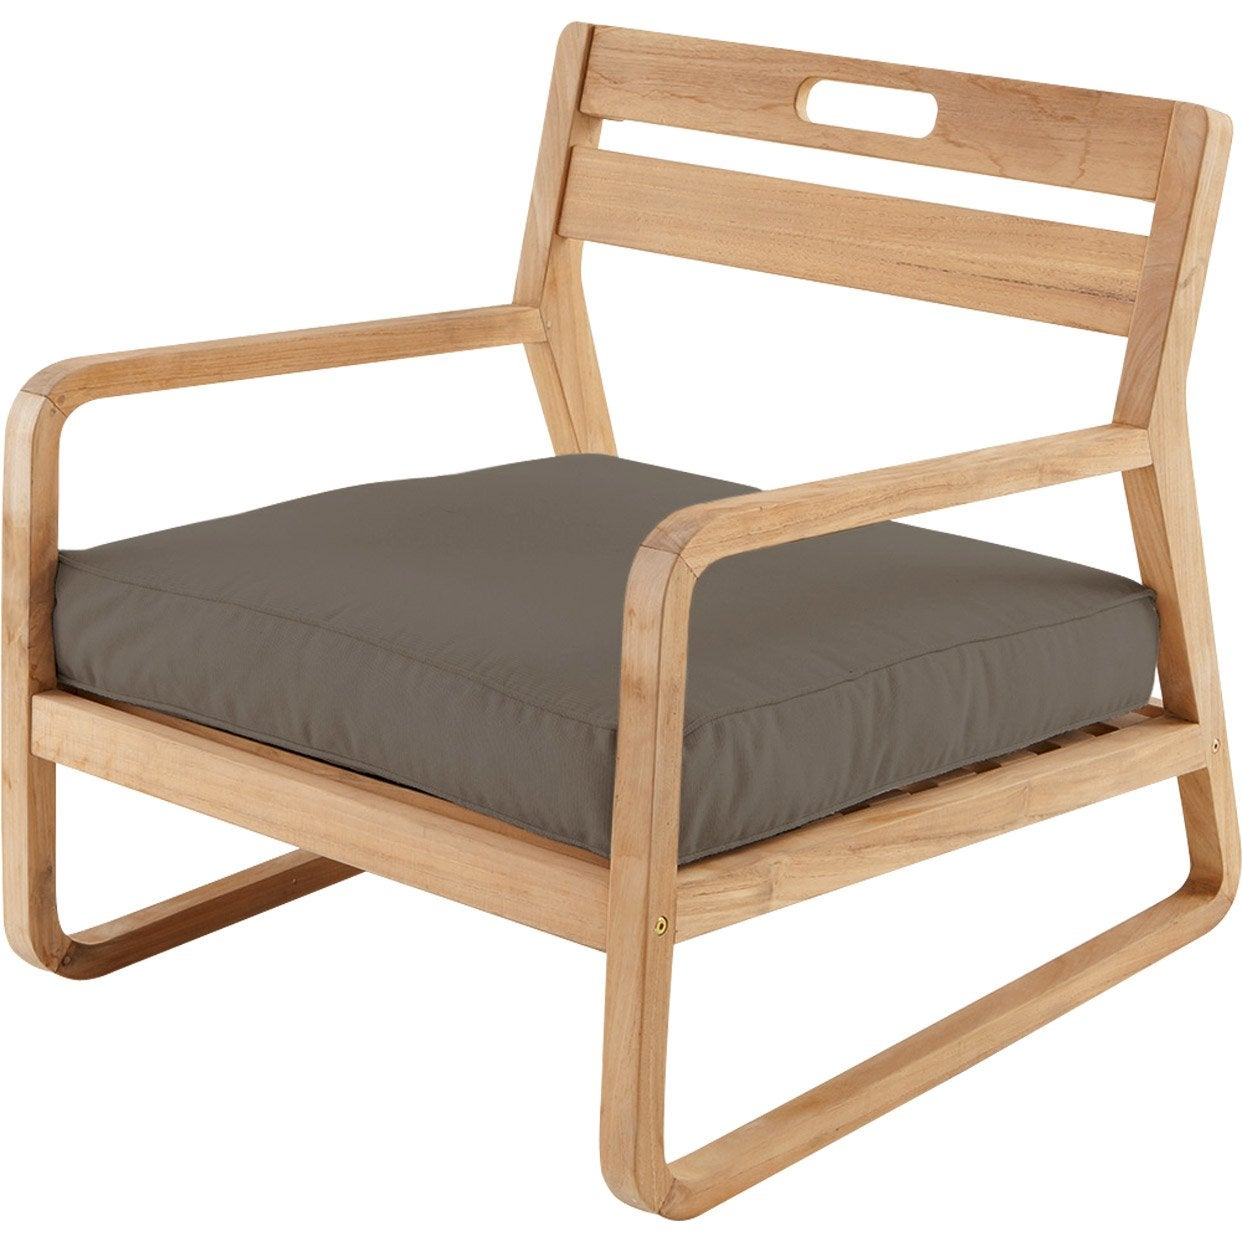 chaise basse de jardin en bois resort naturel leroy merlin. Black Bedroom Furniture Sets. Home Design Ideas